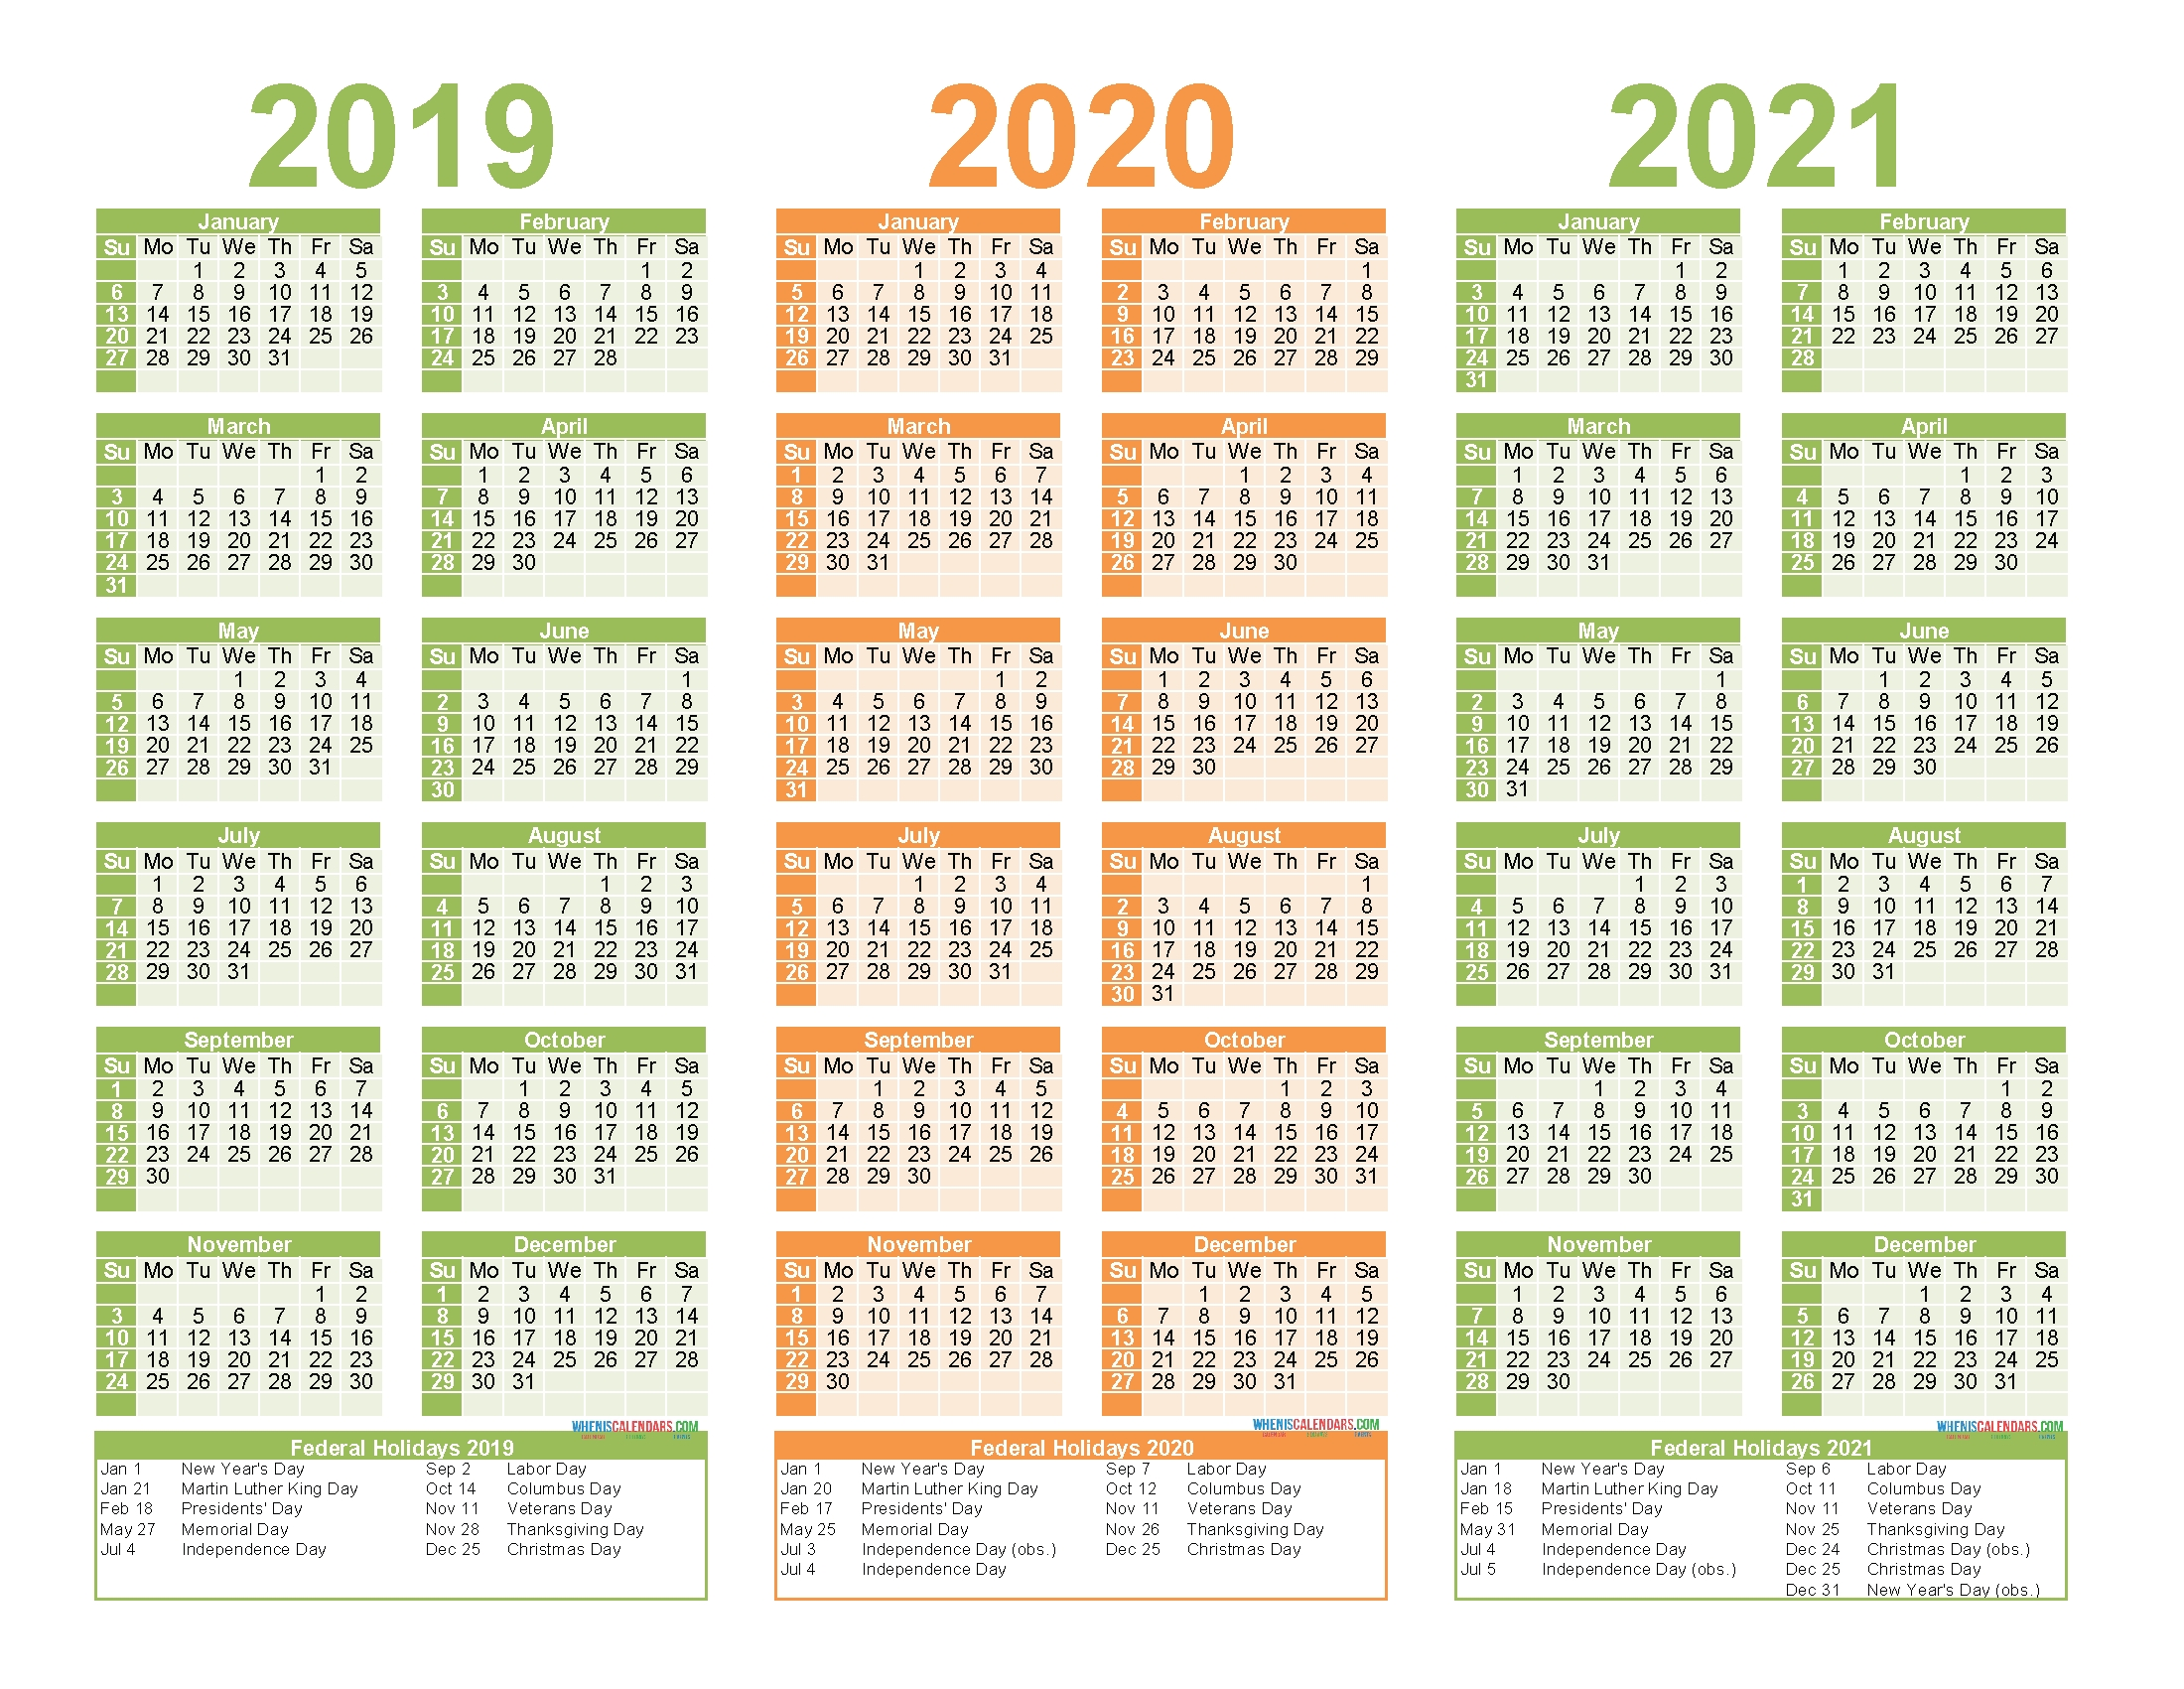 2019 To 2021 Calendar Printable Free Pdf, Word, Image | Free with 2019 To 2021 Printable Calendar